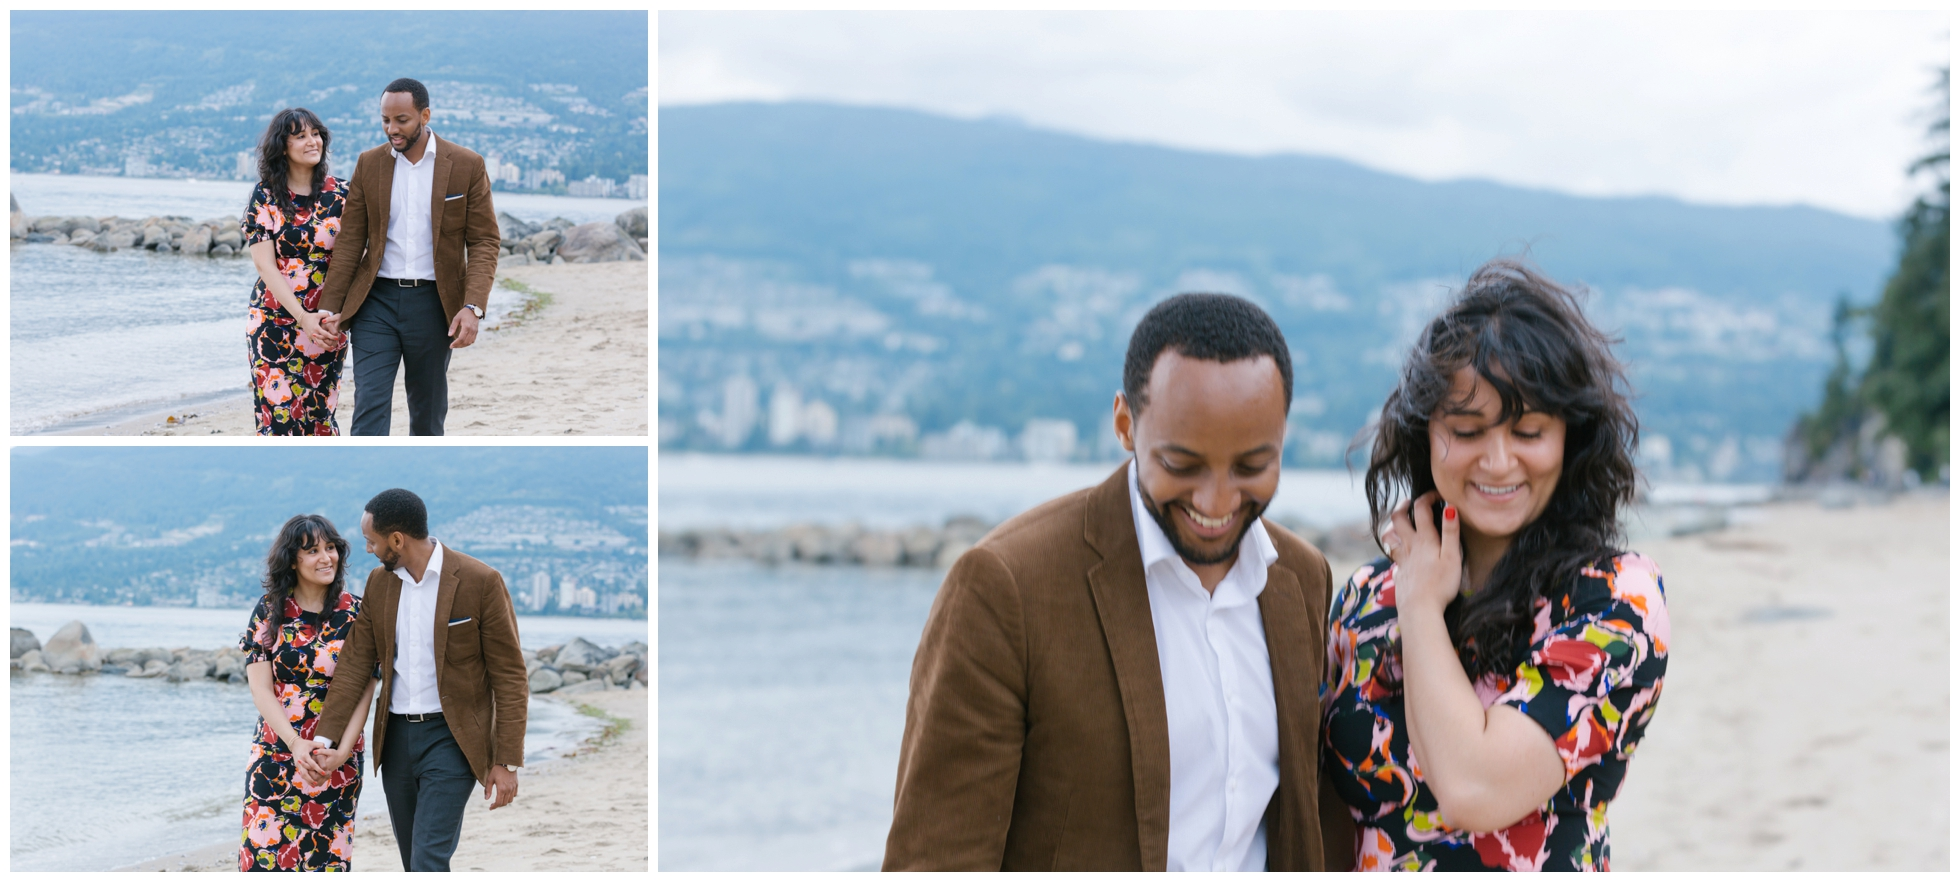 Tara and Petros Engagement Session (Life by Selena Photography)_0065.jpg